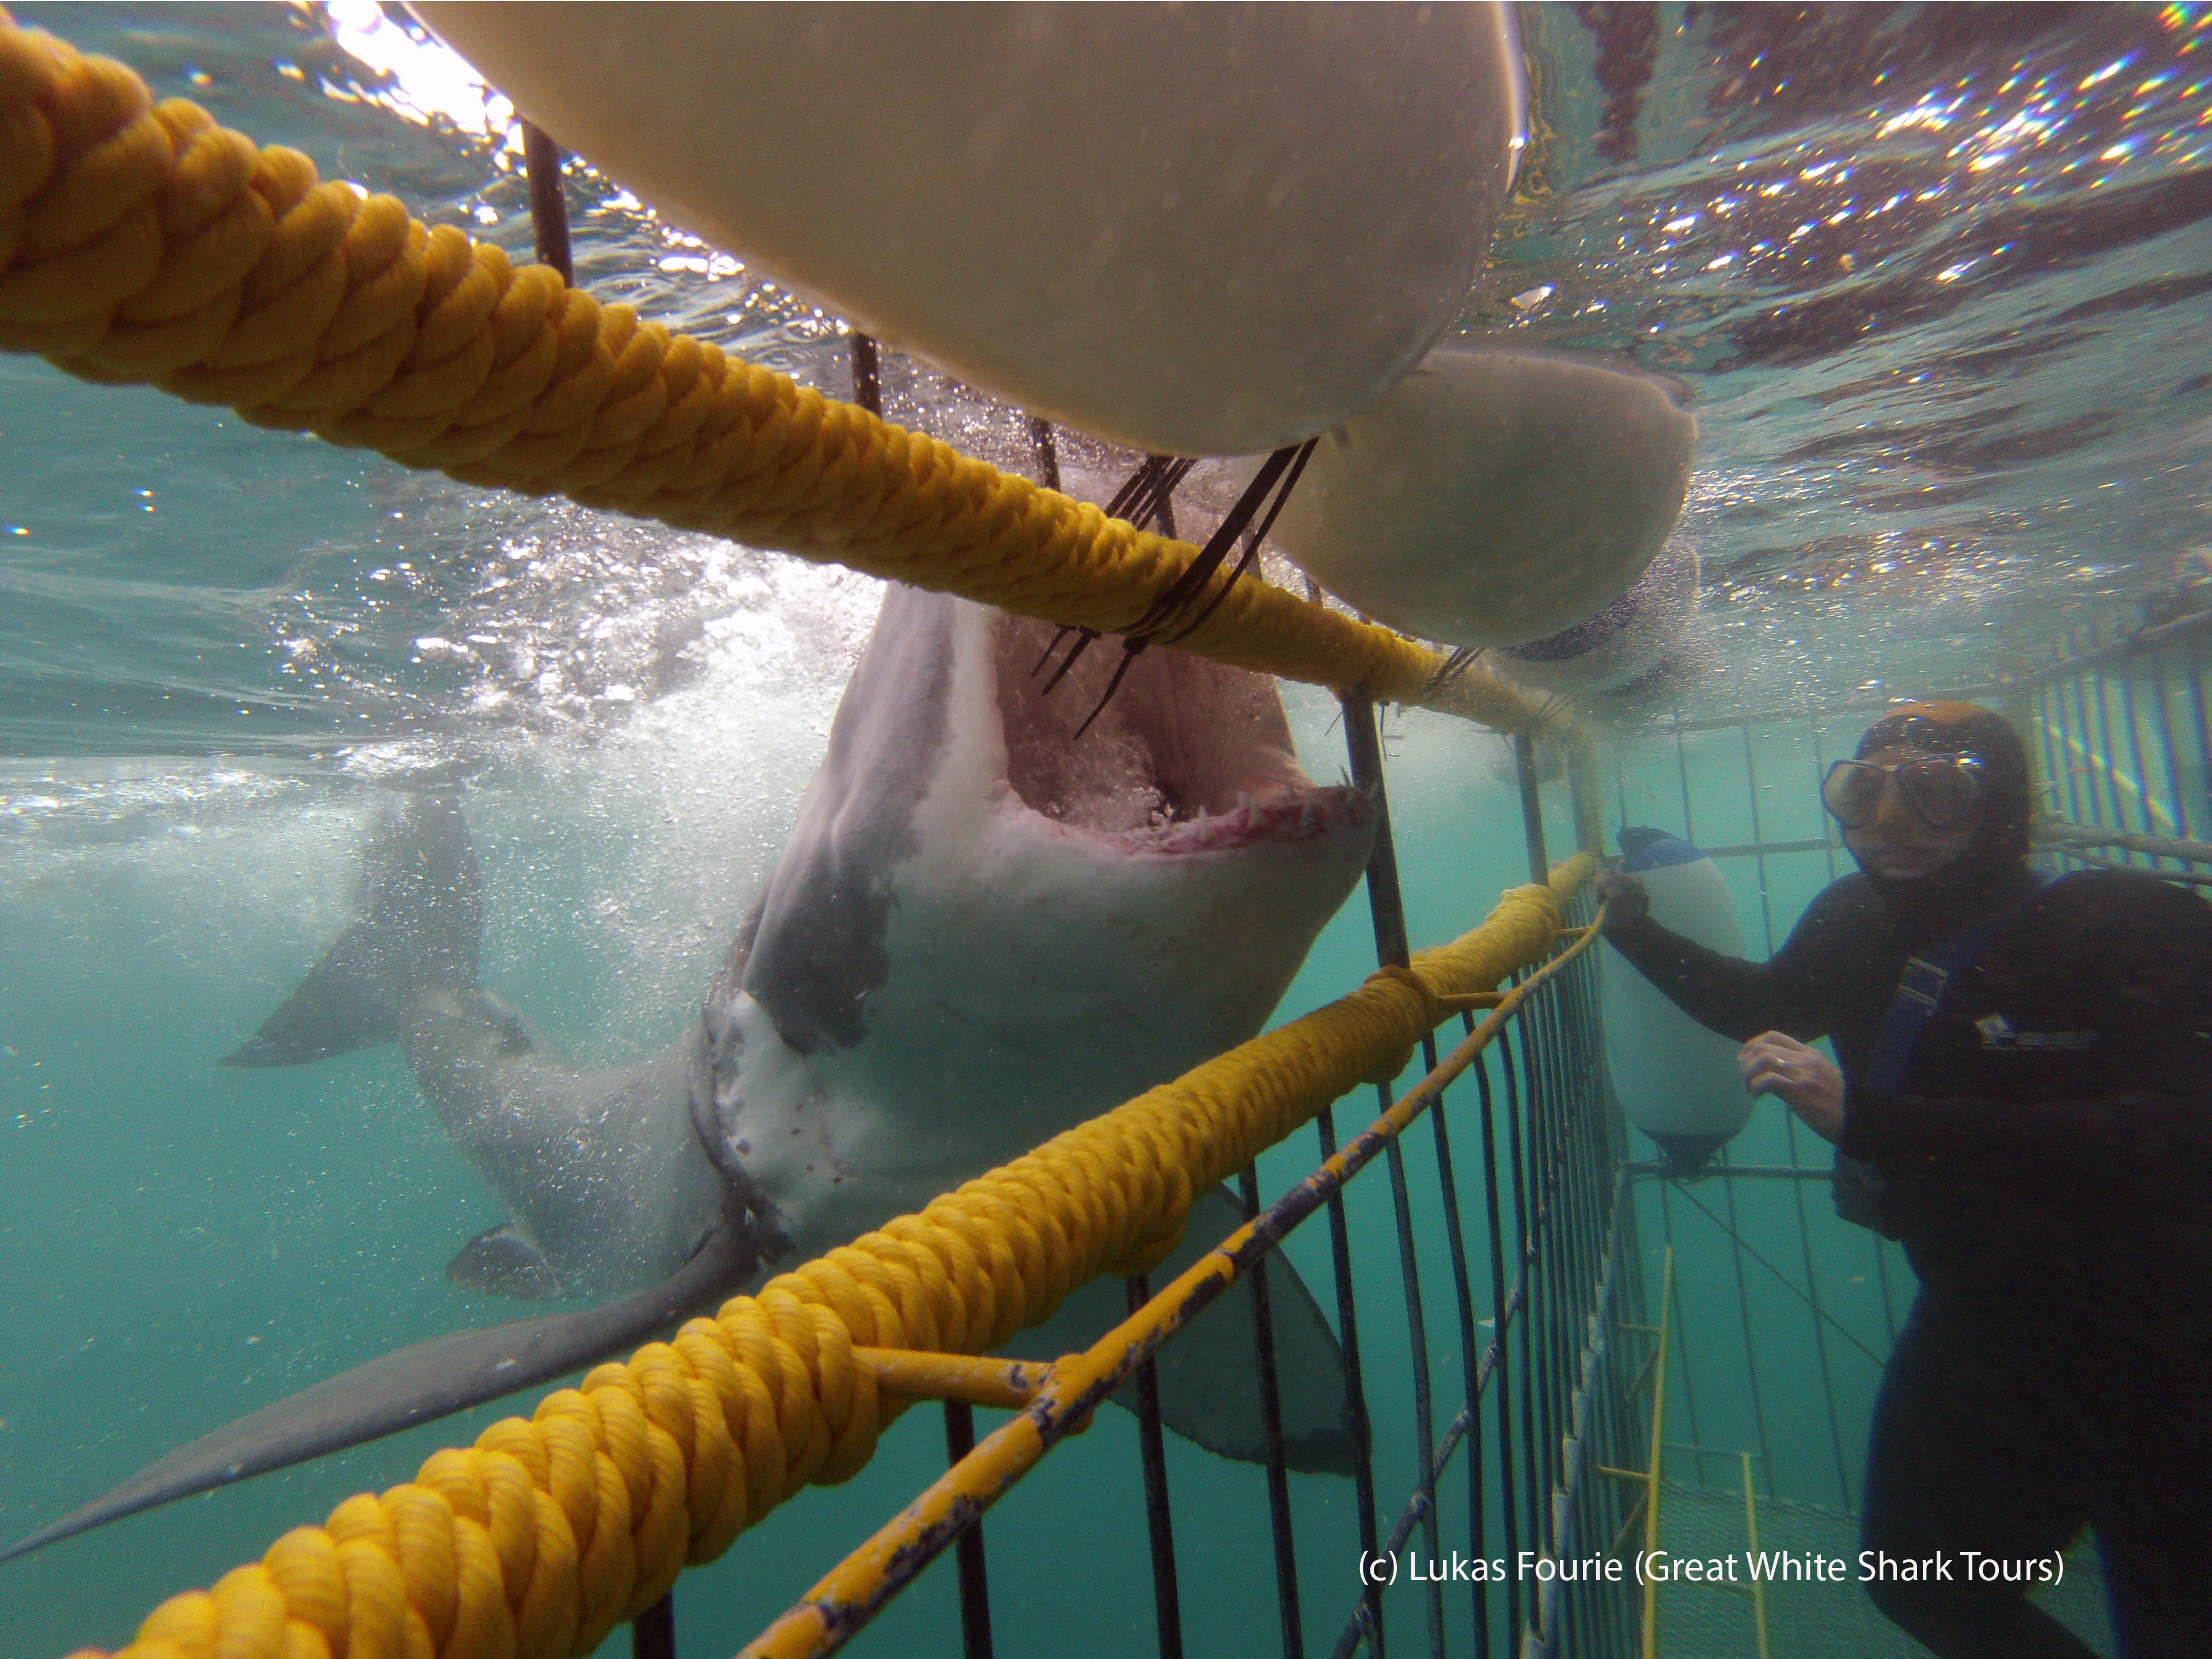 Experience the Great White Shark Cage Diving